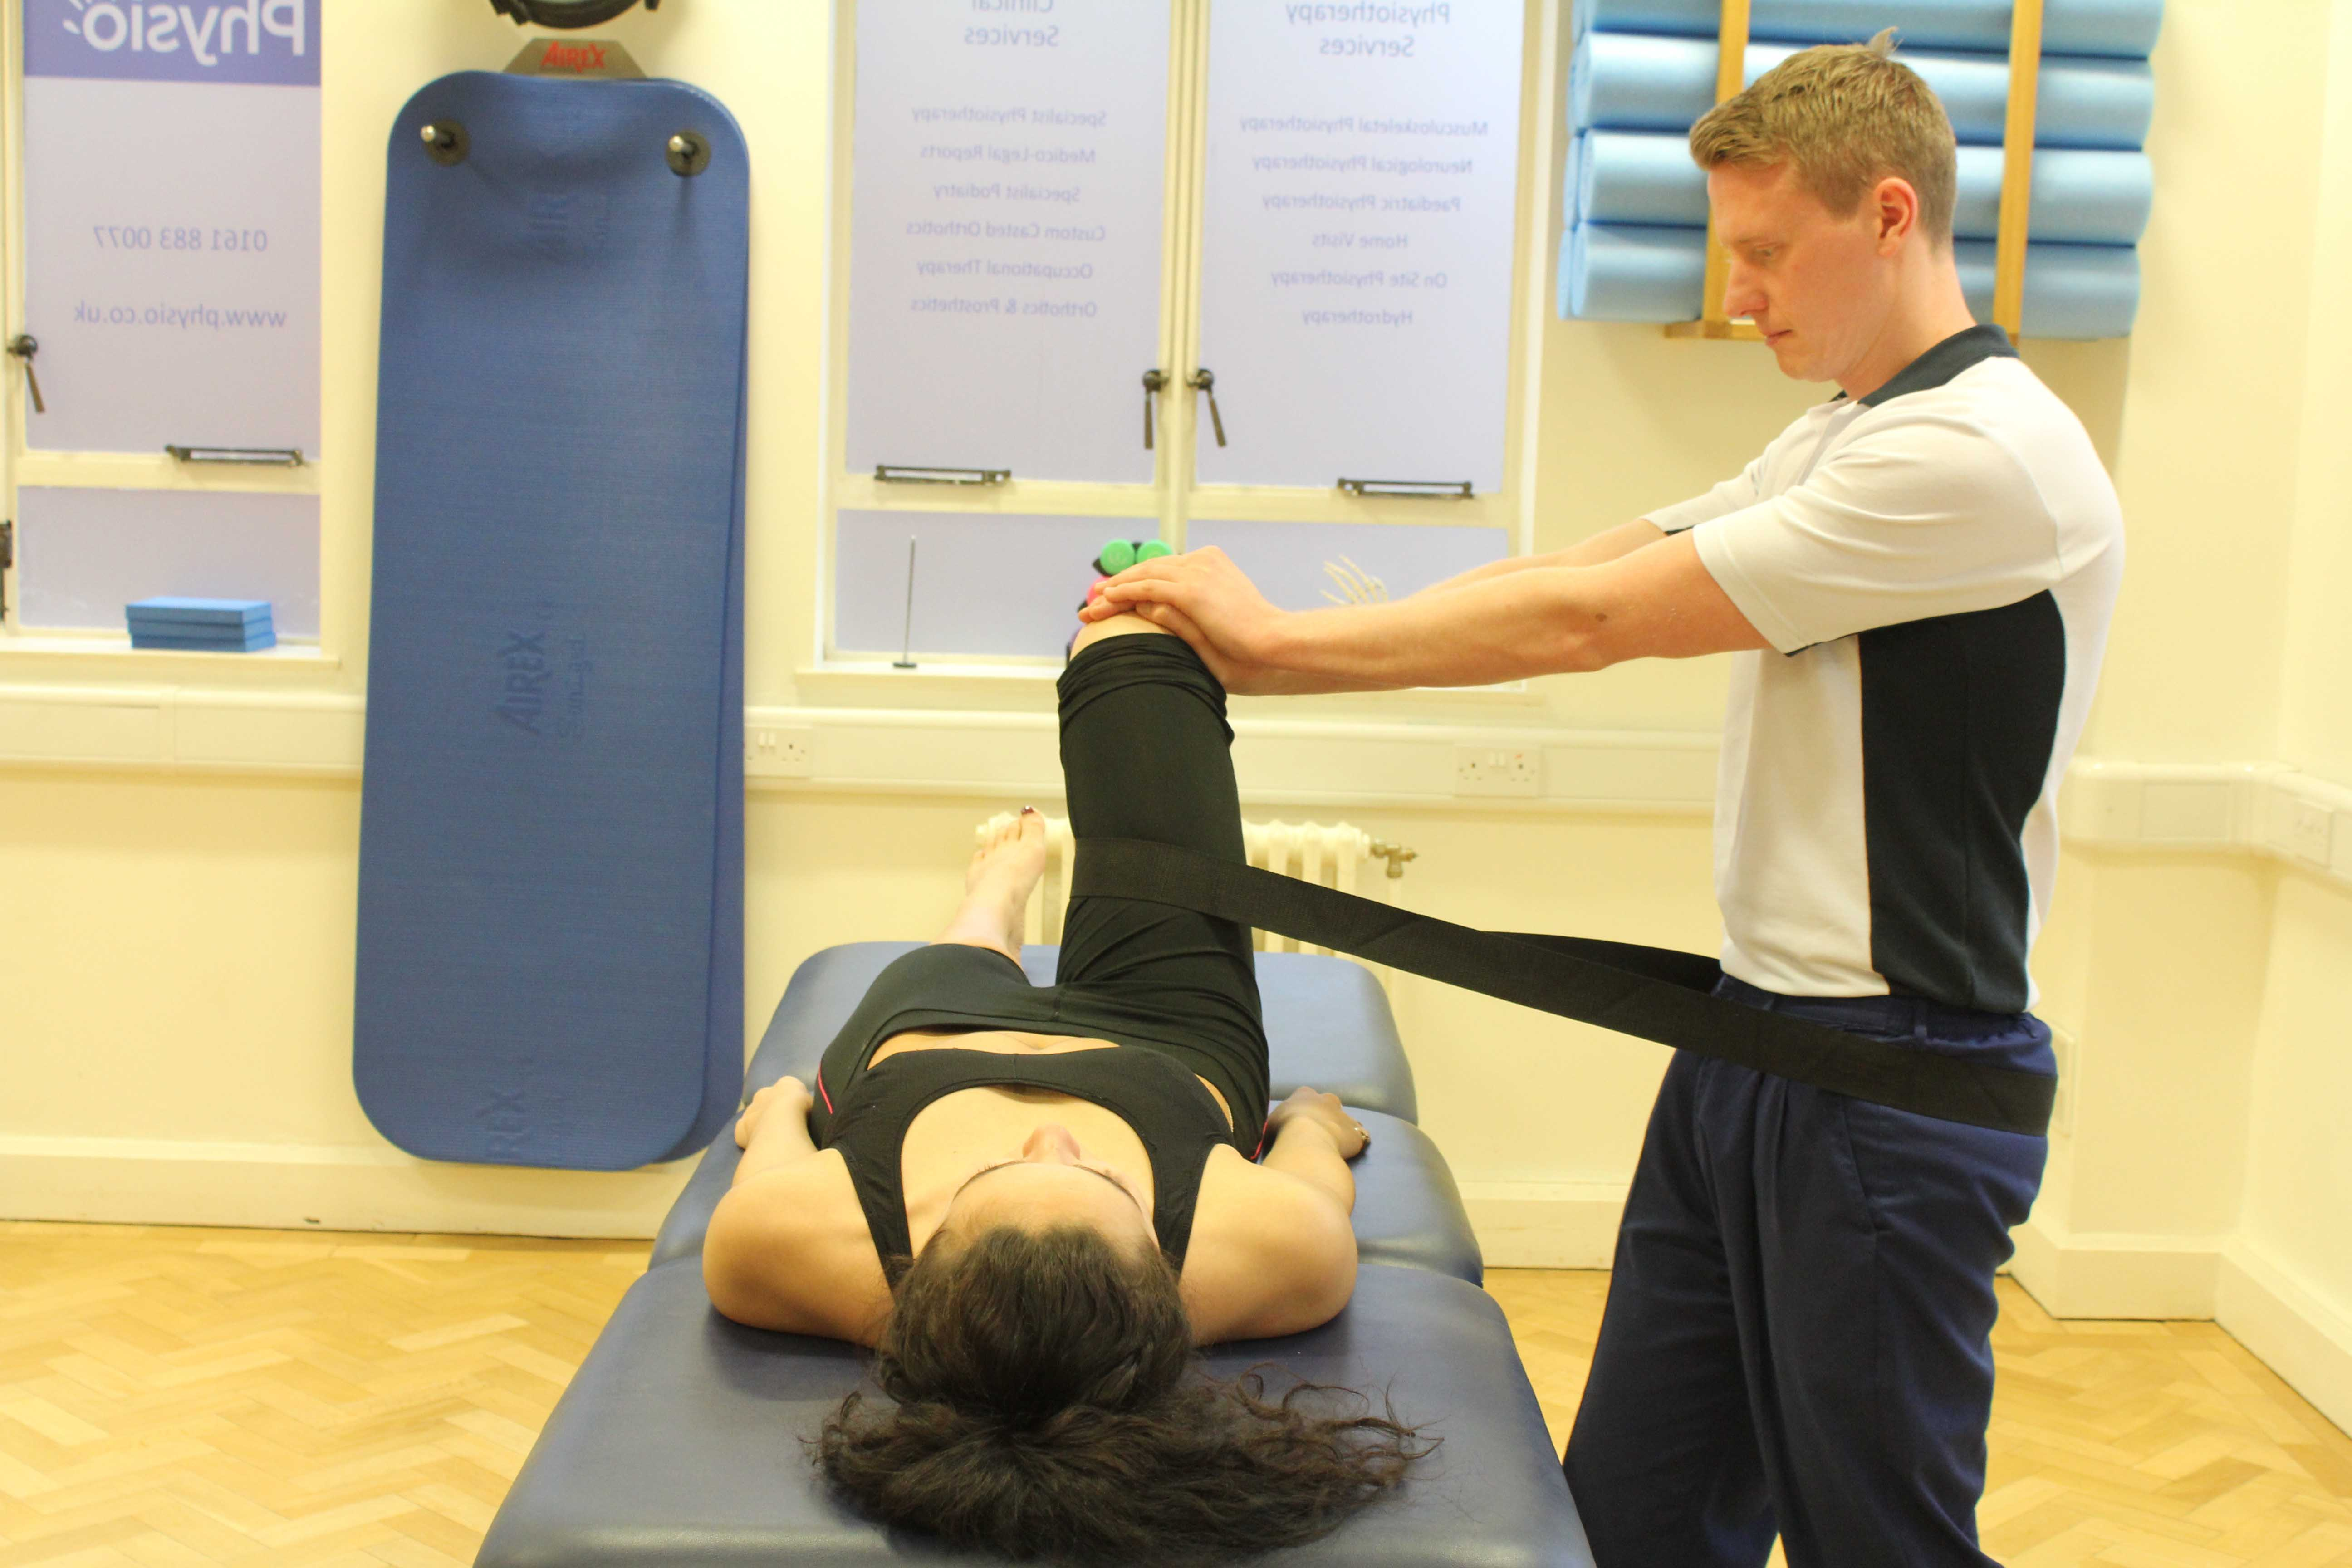 Mobilisations of the hip joint with a strap by an experienced physiotherapist